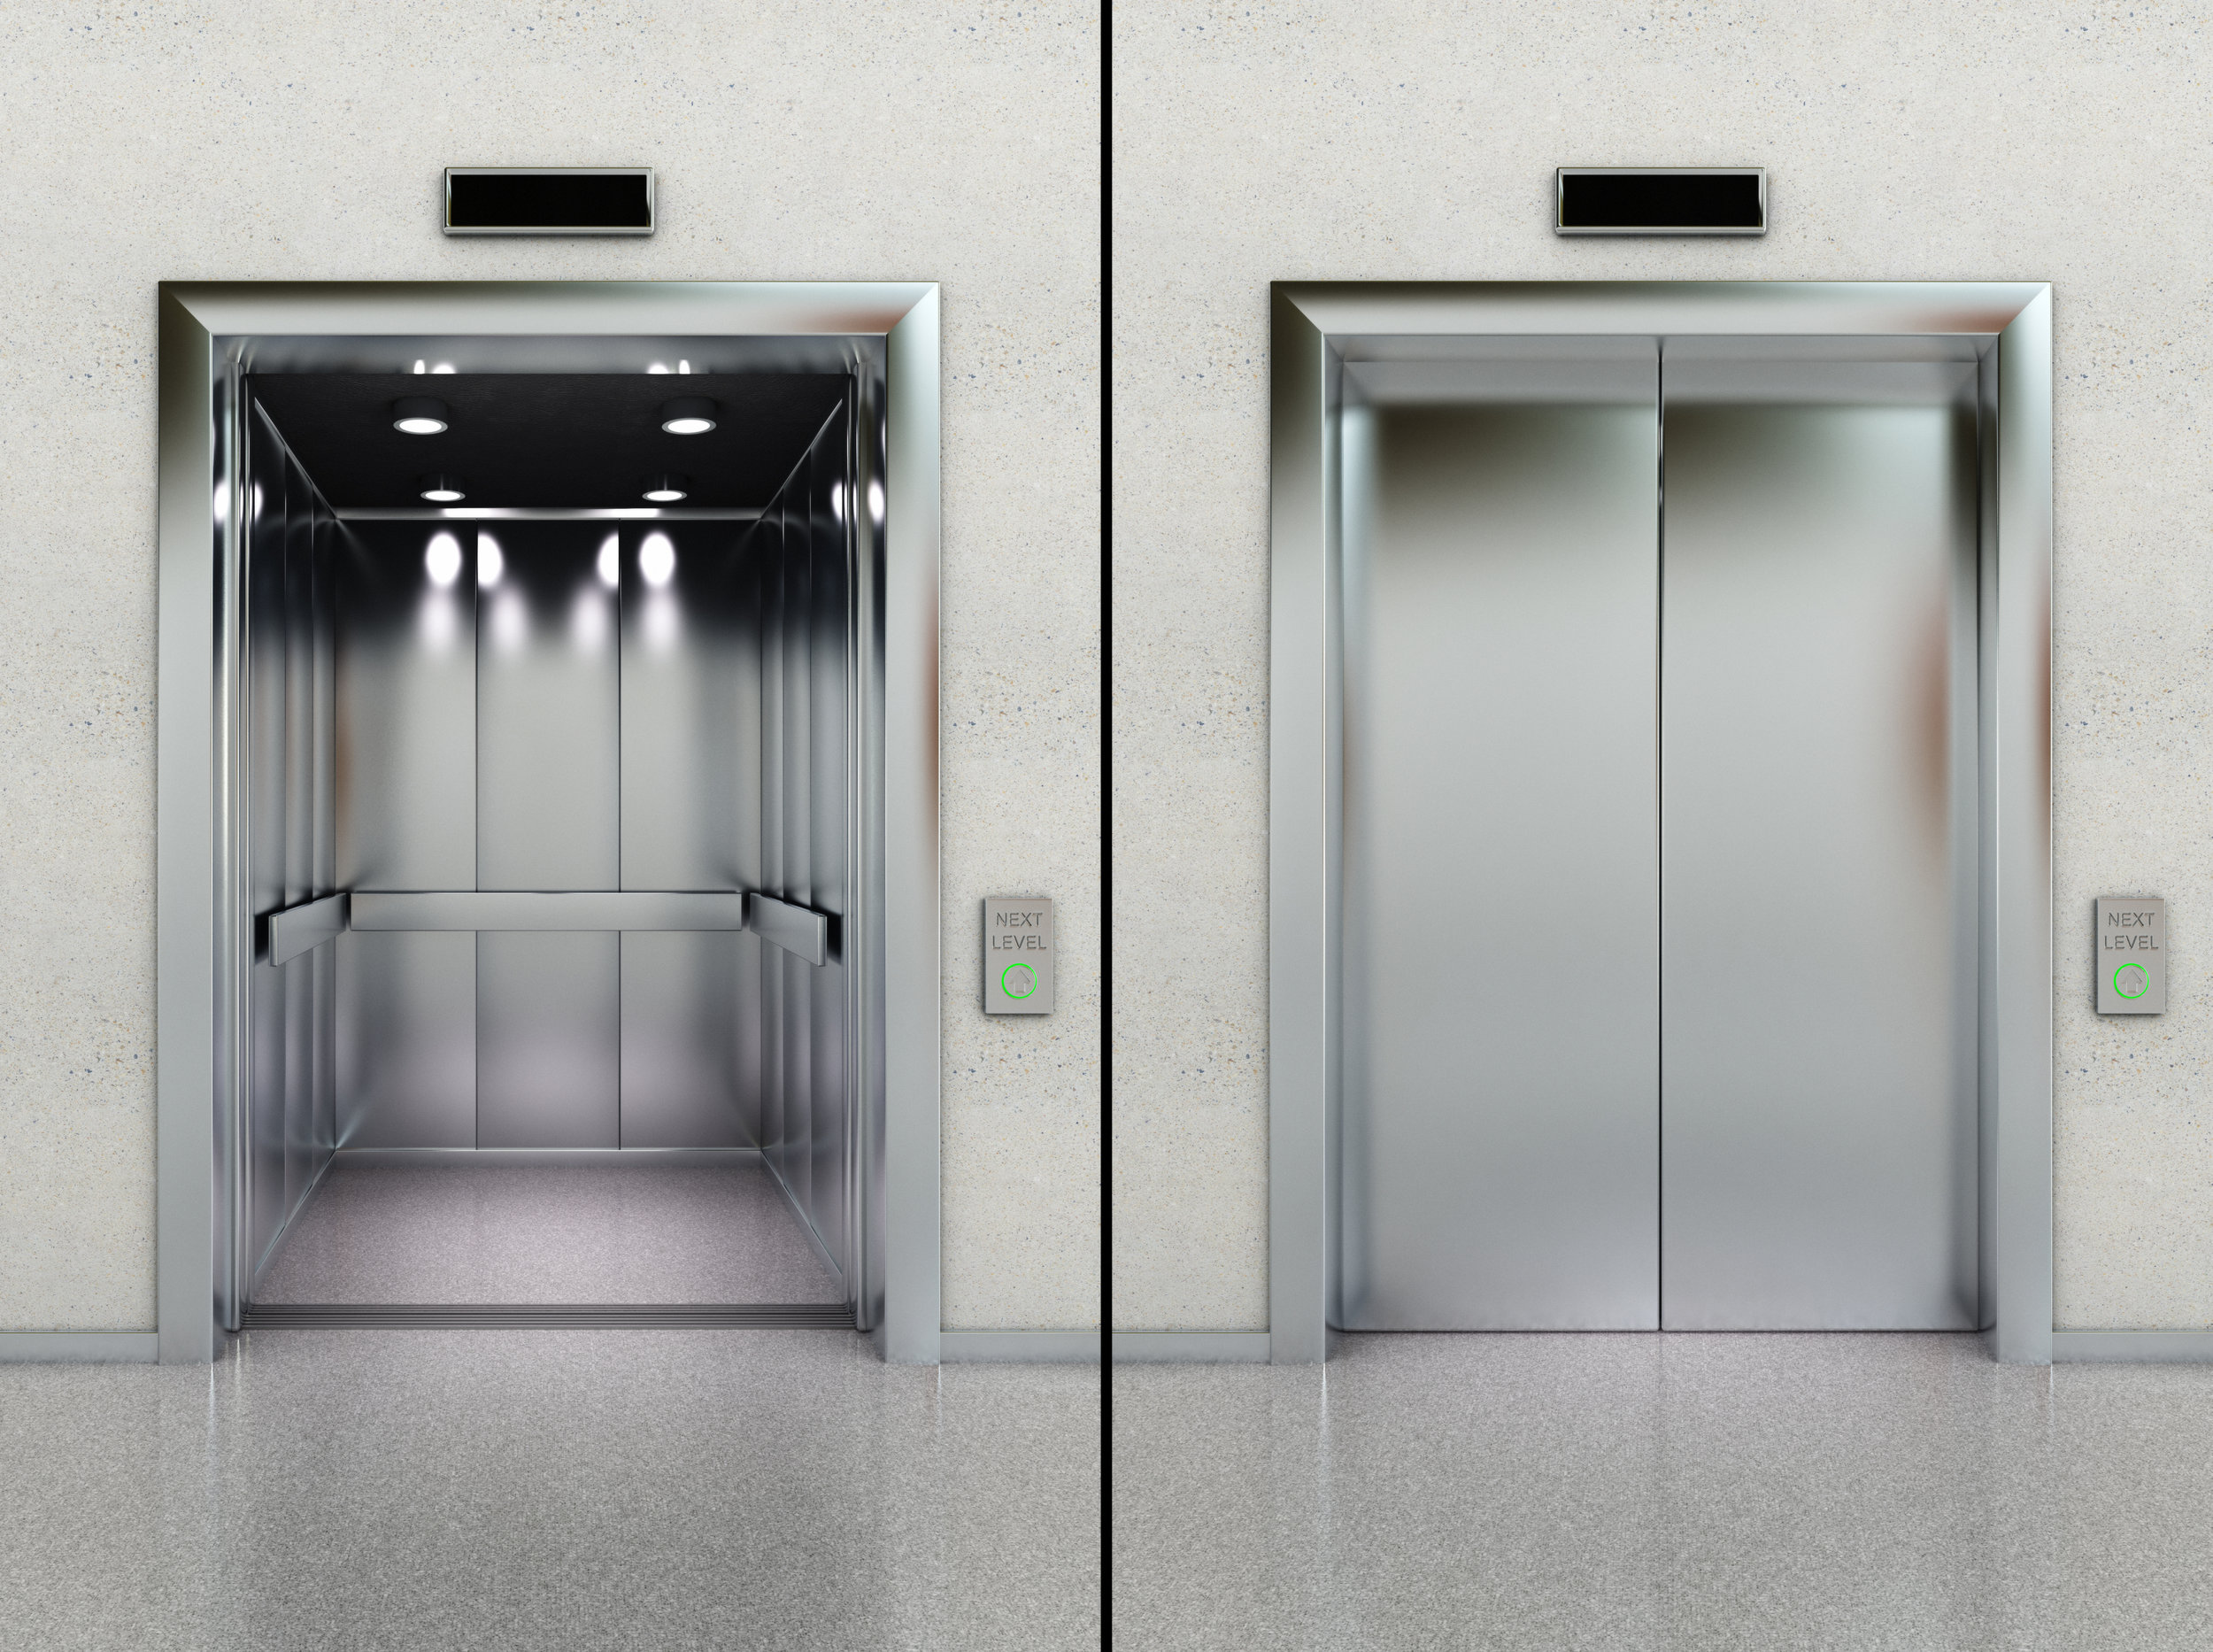 Installation - Bleyle Elevator Specializes in low to mid-rise custom projects including retrofitting existing buildings with new elevators. We offer a support team that includes engineers, architects, general contractors and consultants.